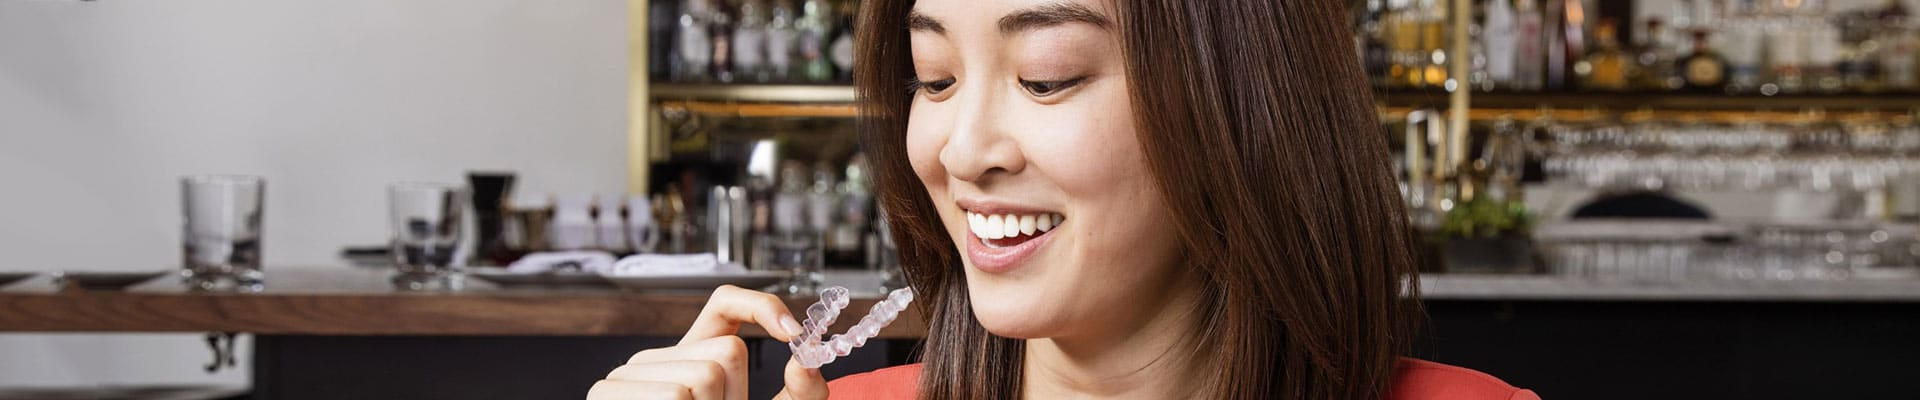 feature-Image-invisalign-woman-aligner at Central Michigan Orthodontics in Mt Pleasant and Clare MI